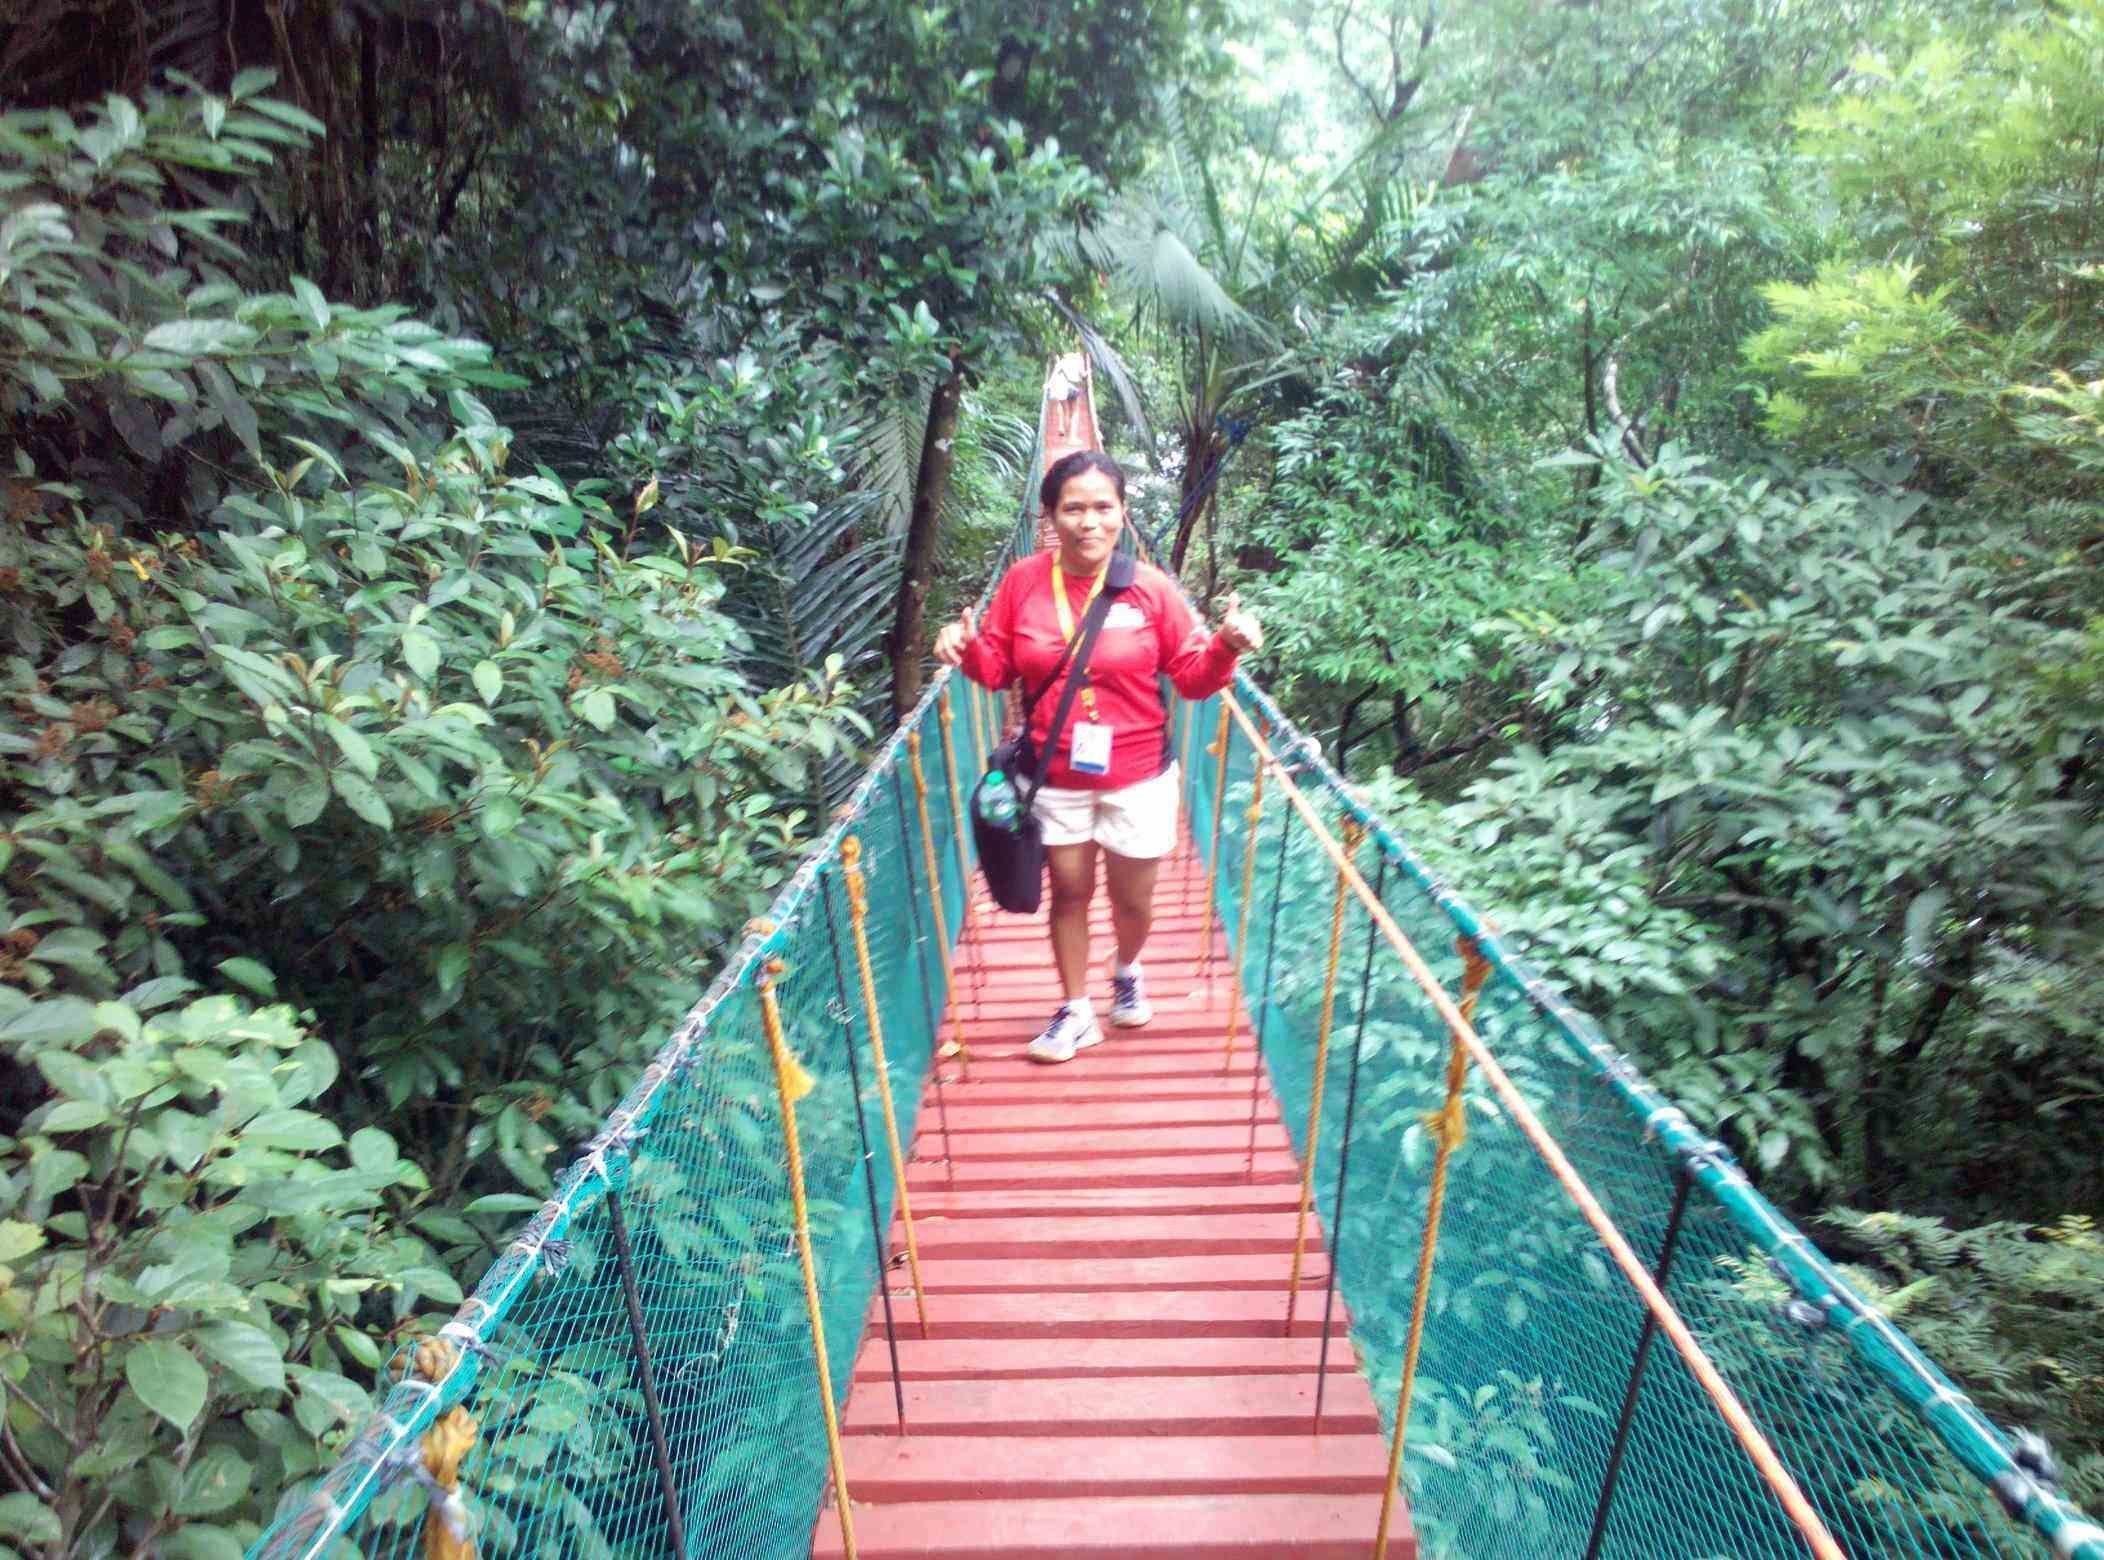 COURAGE. Ate Virgie used to take this hanging bridge almost everyday to end the every tour she handles. While all of us cross the bridge with harness and shaking knee, she courageously lead the way without any safety gear